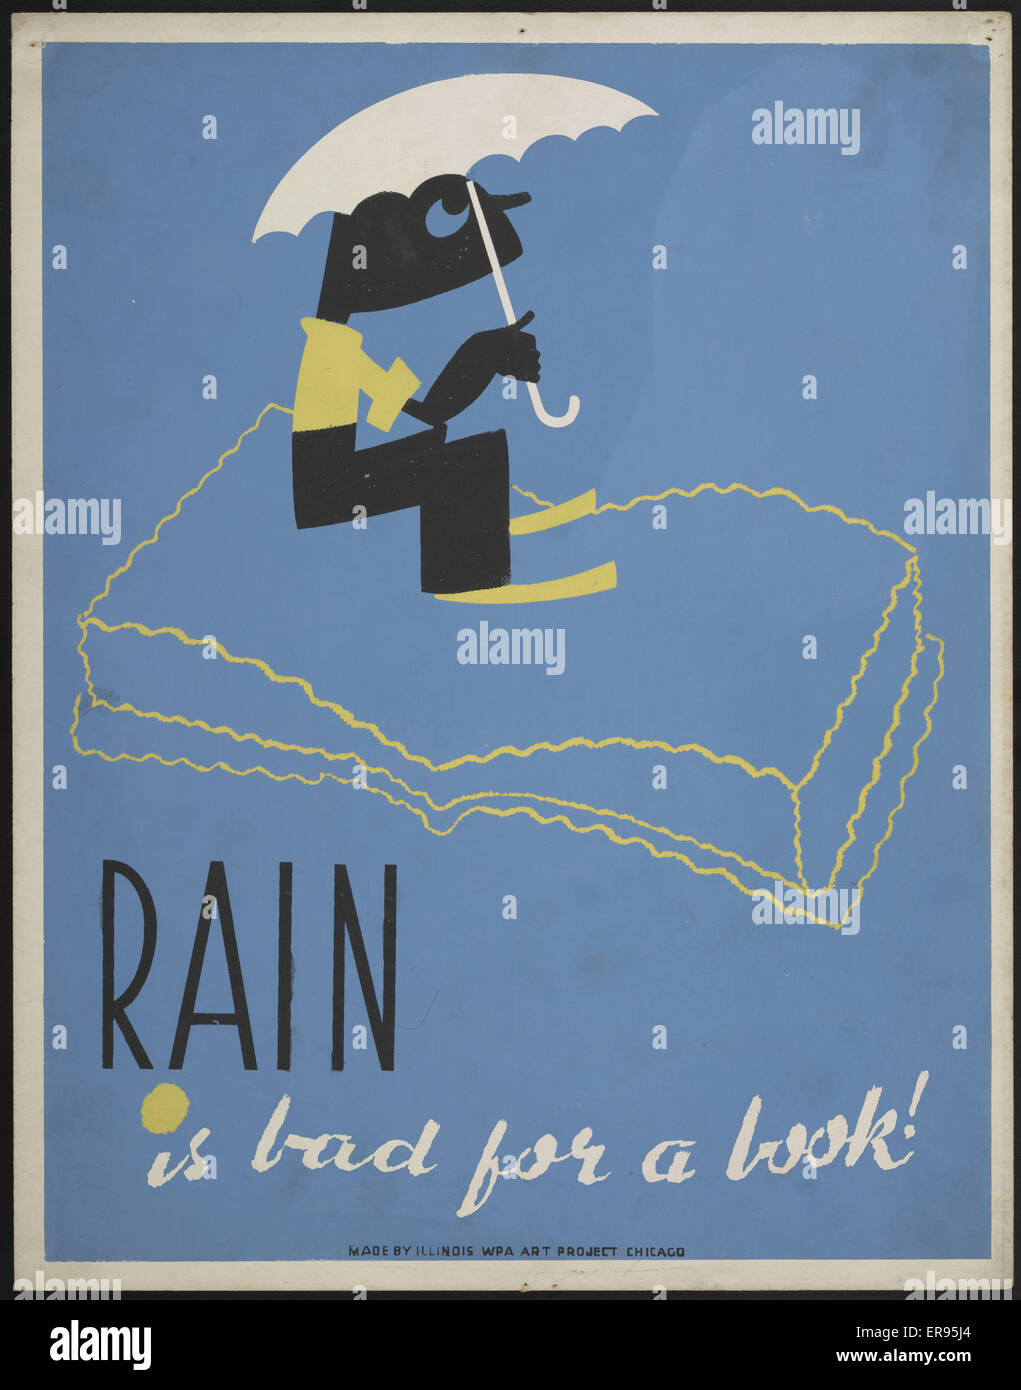 Rain is bad for a book!. WPA poster shows a boy with an umbrella sitting on an open book. Date between 1936 and - Stock Image